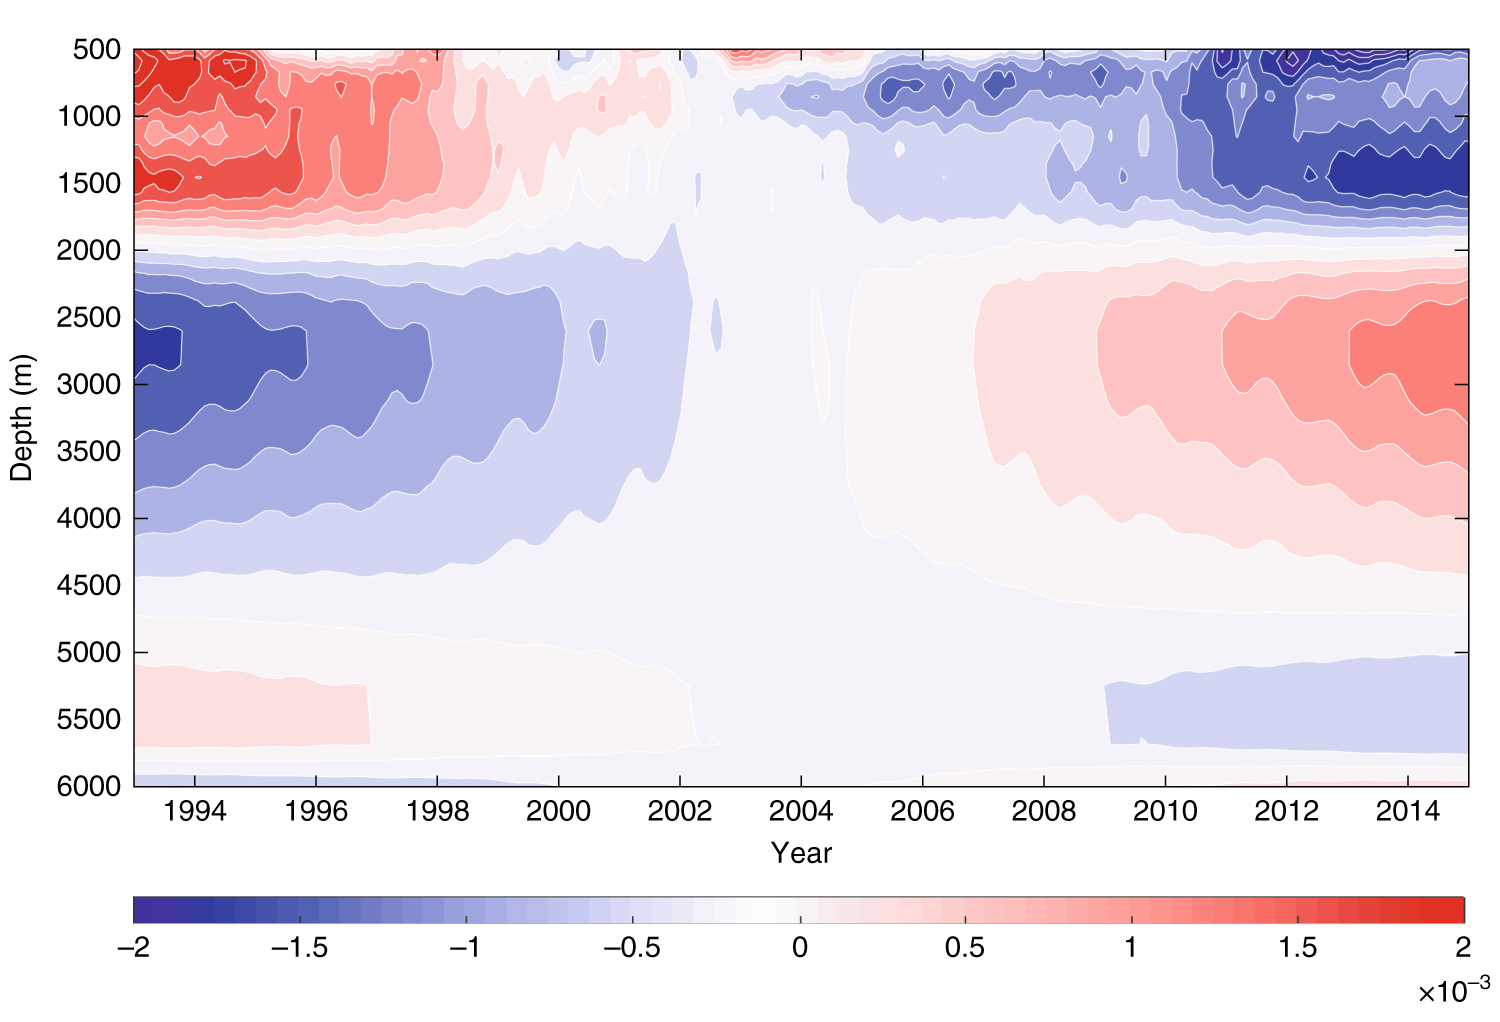 Time evolution of globally averaged deep ocean salinity